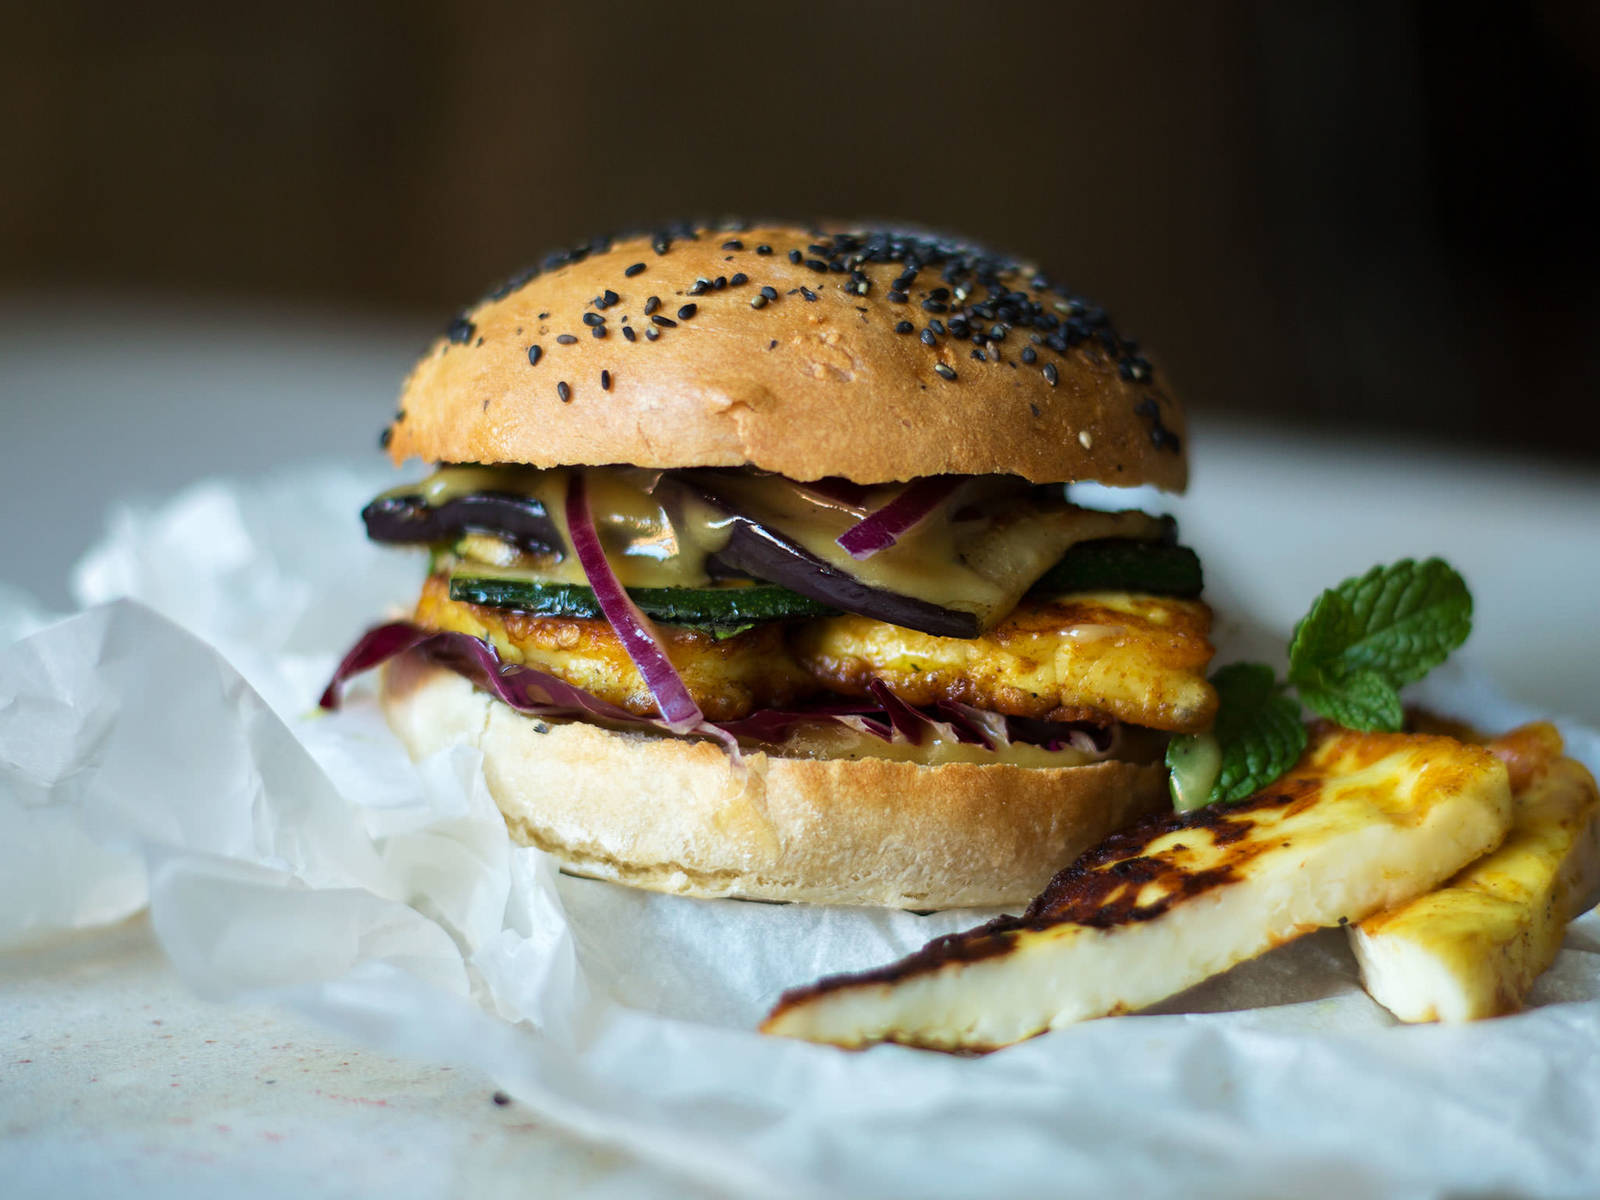 Halloumi burger with honey mustard sauce